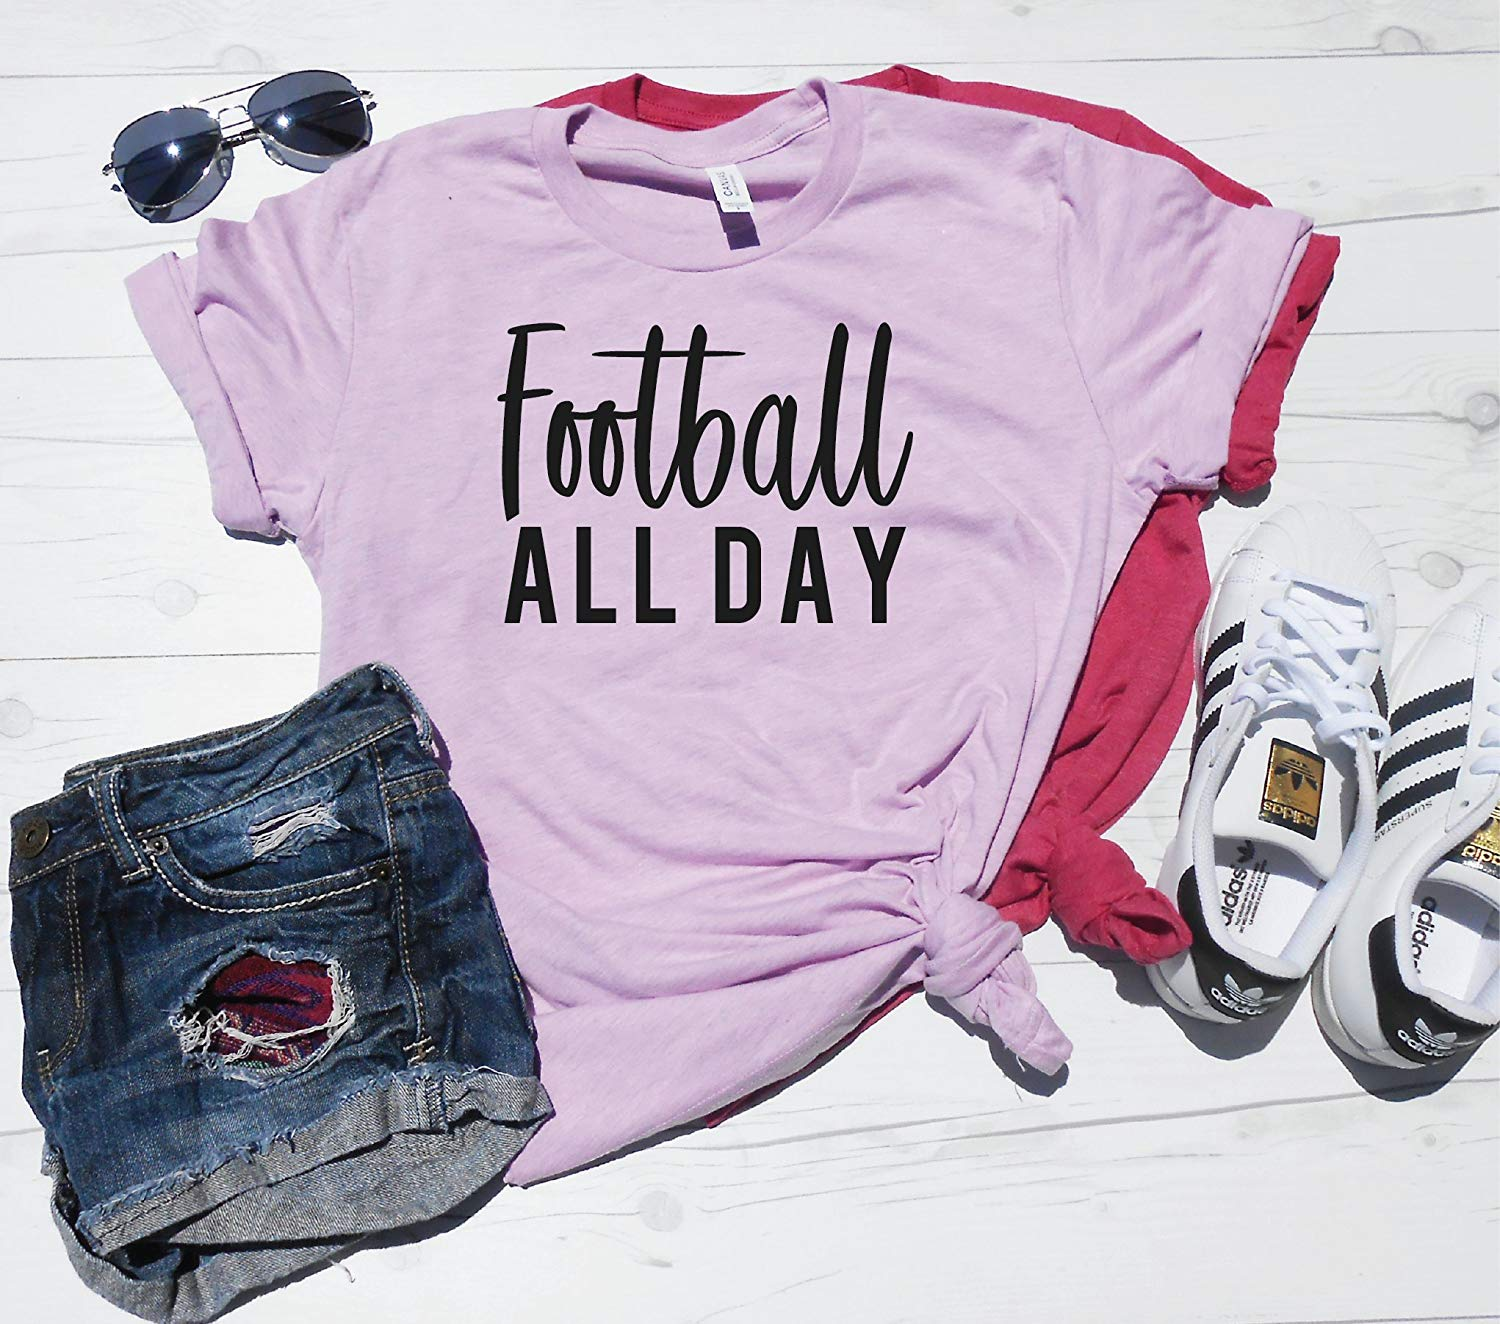 Football All Day, Game Day Shirt, Football Season shirt,Cute Football Shirt, Football Game T-Shirt, Mom Football Shirt, Football Season Shirt, First day of Football Shirt